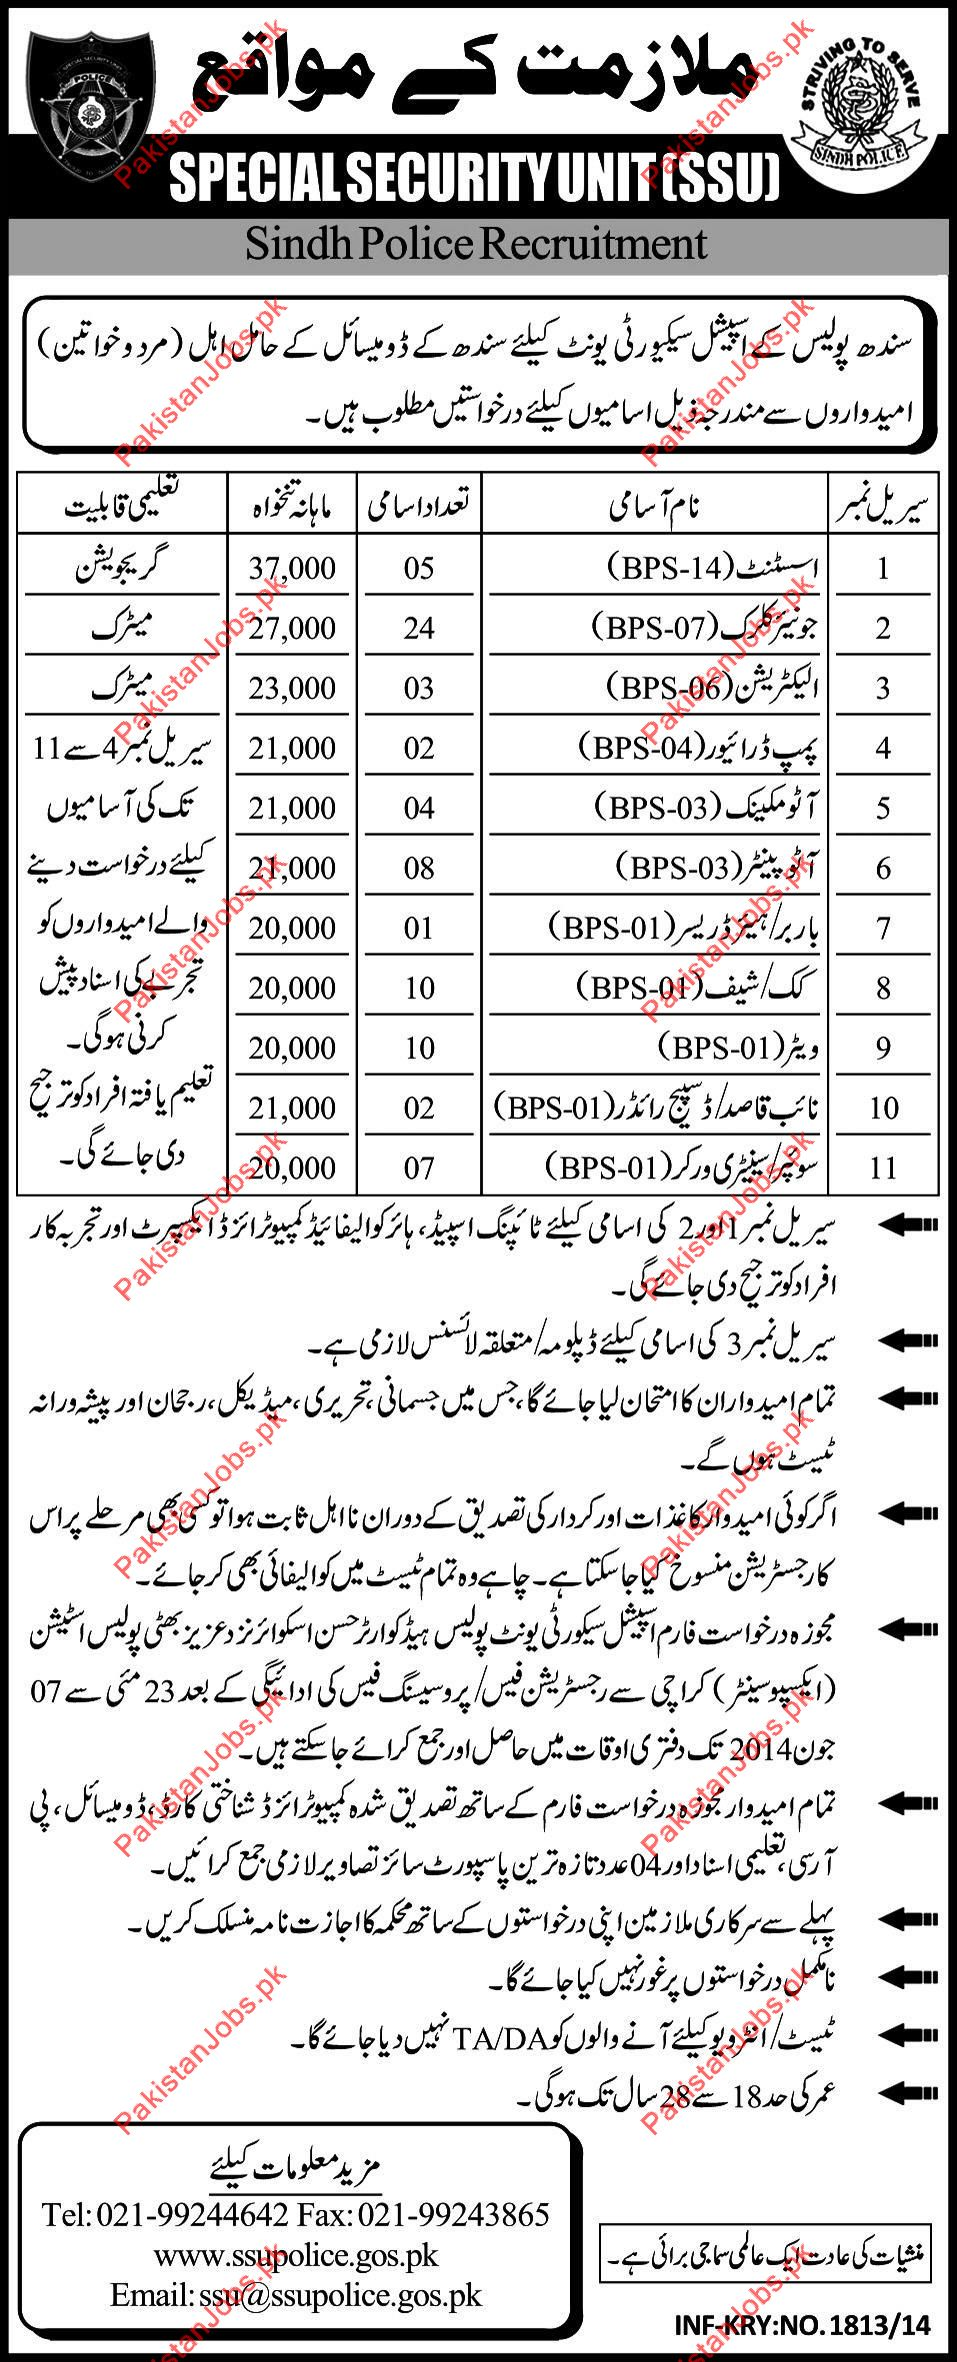 Special Security Unit (SSU) Required Staff 2019 Speical Security